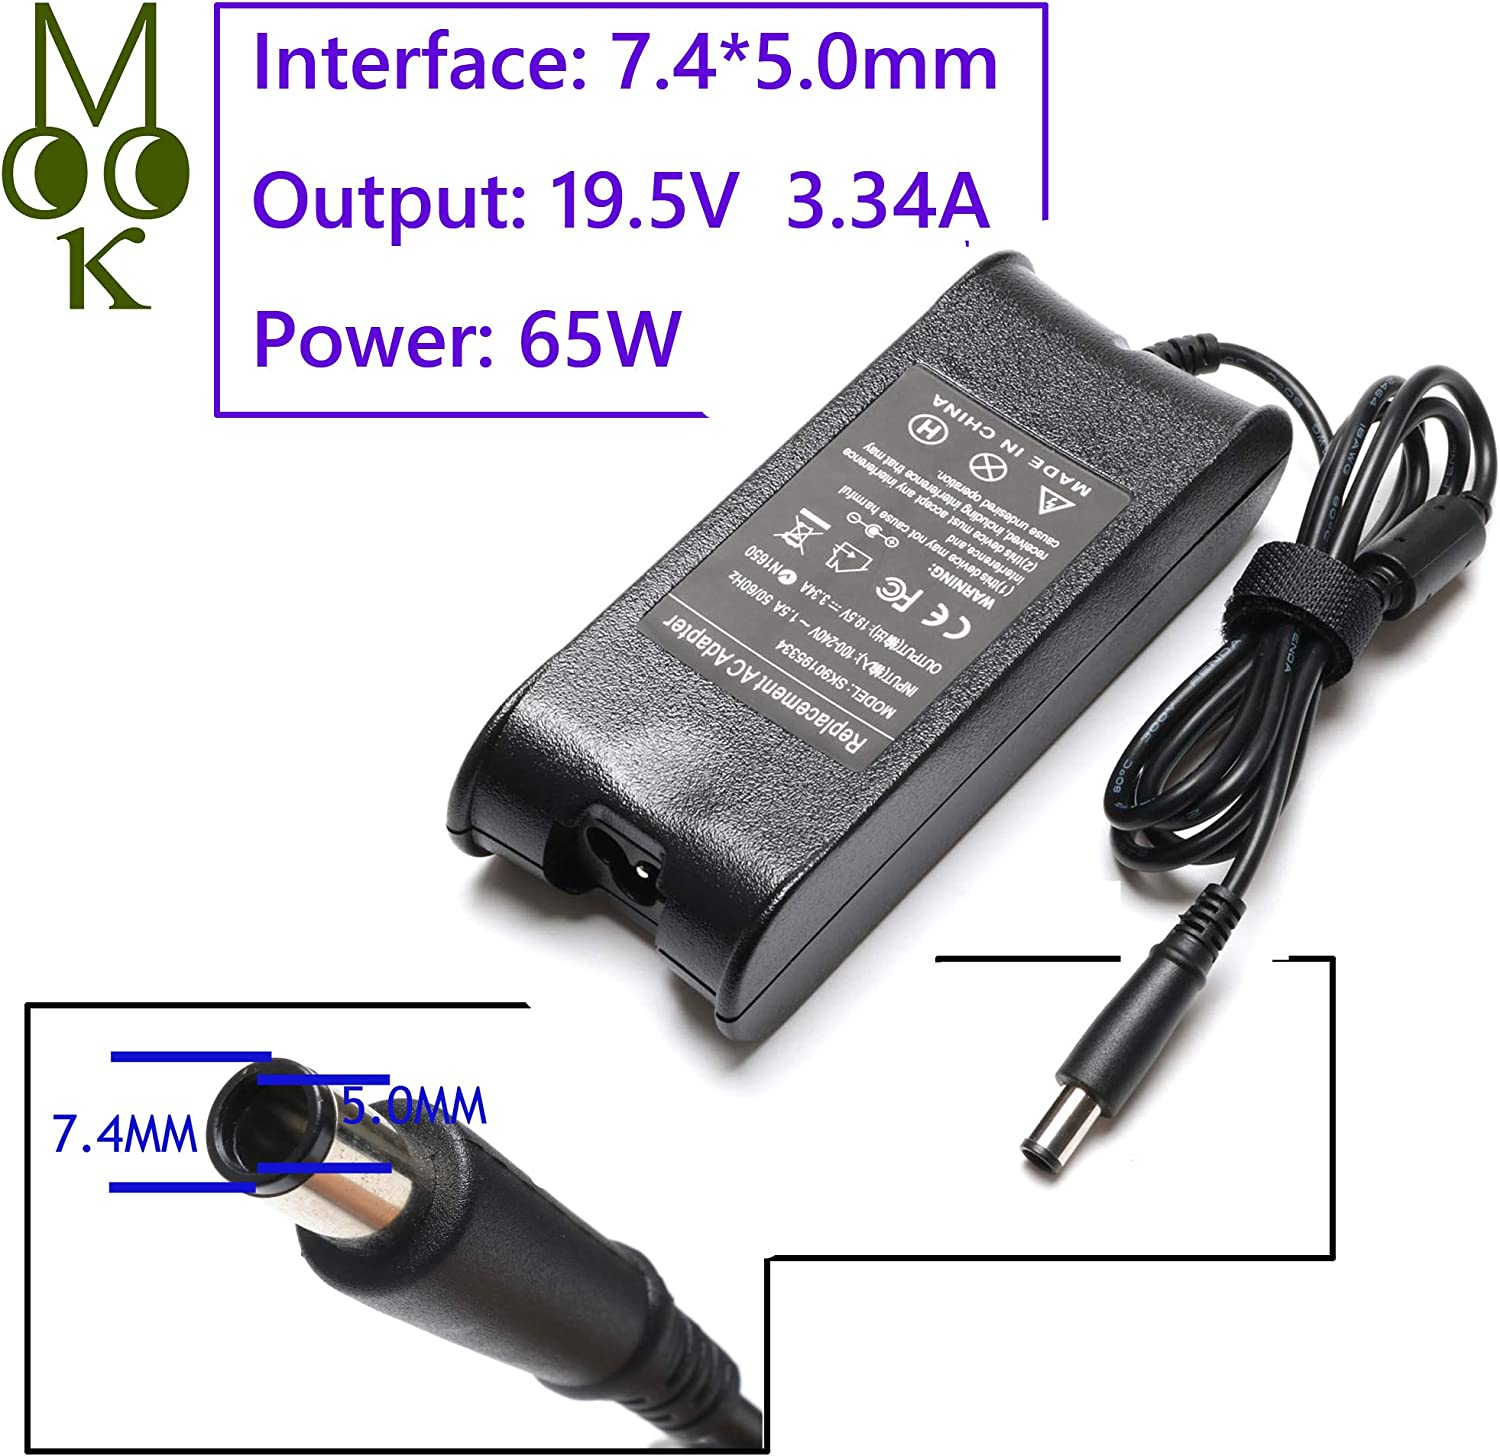 65W 19.5V 3.34A Laptop Charger for Dell Latitude E6430 E5470 E5540 E7440 E7450 5490 7480 7490 LA65NM130 inspiron 15 3521 Ac Adapter Power Supply Cord